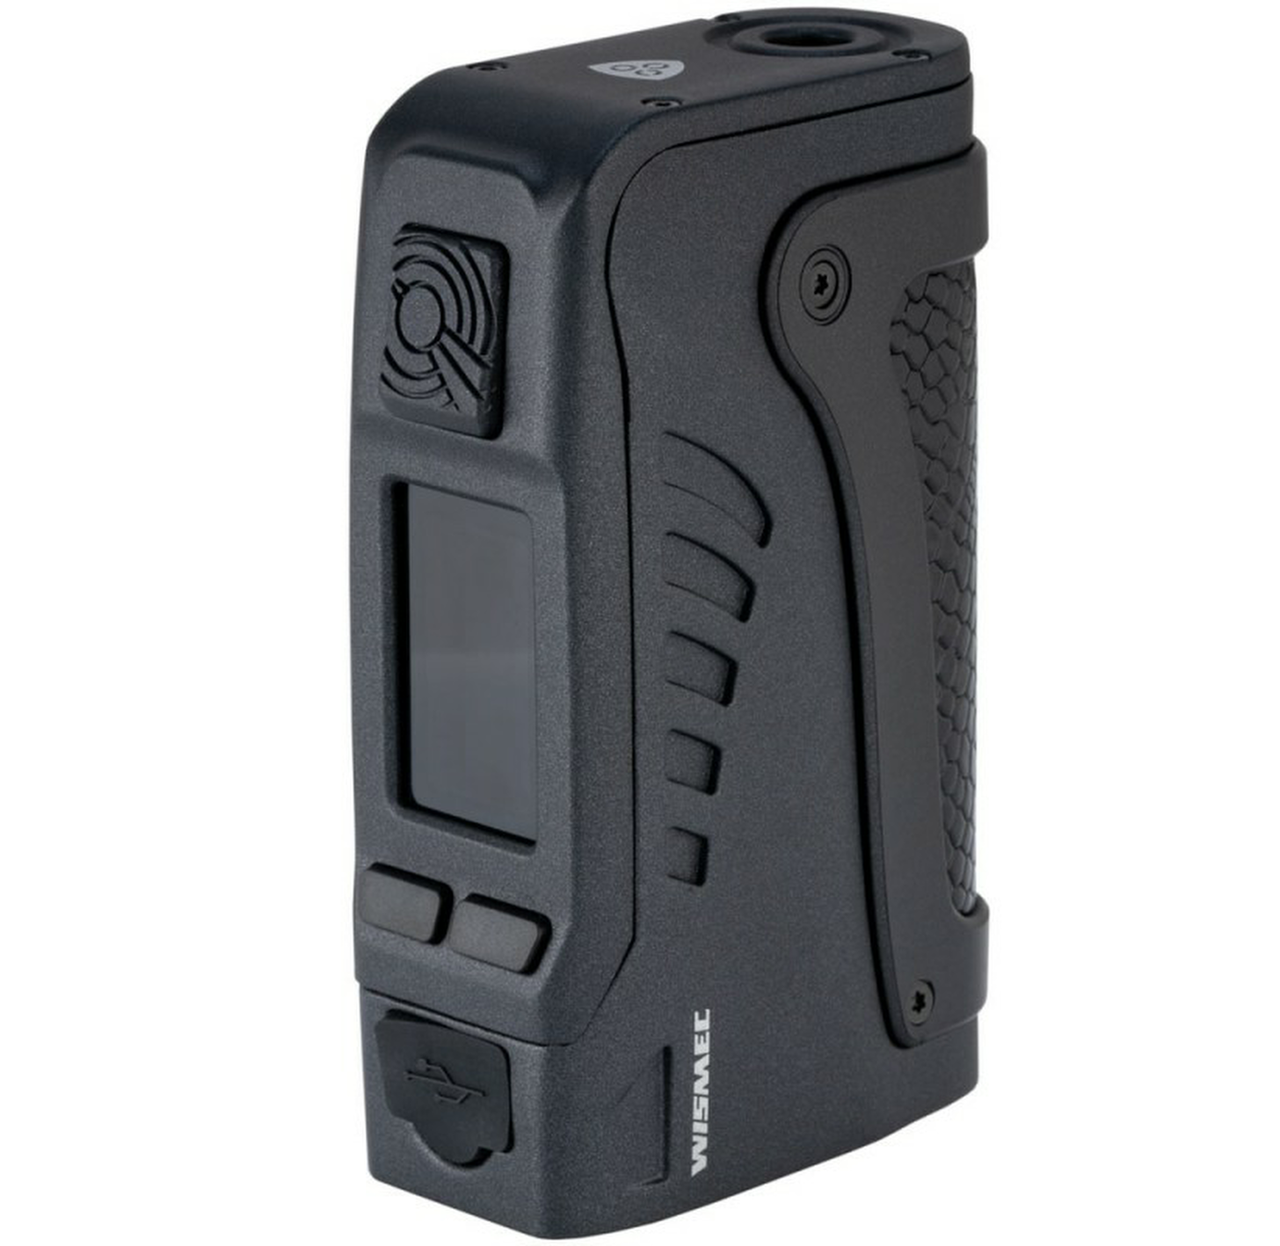 Reuleaux Tinker 2 Waterproof Mod By Wismec